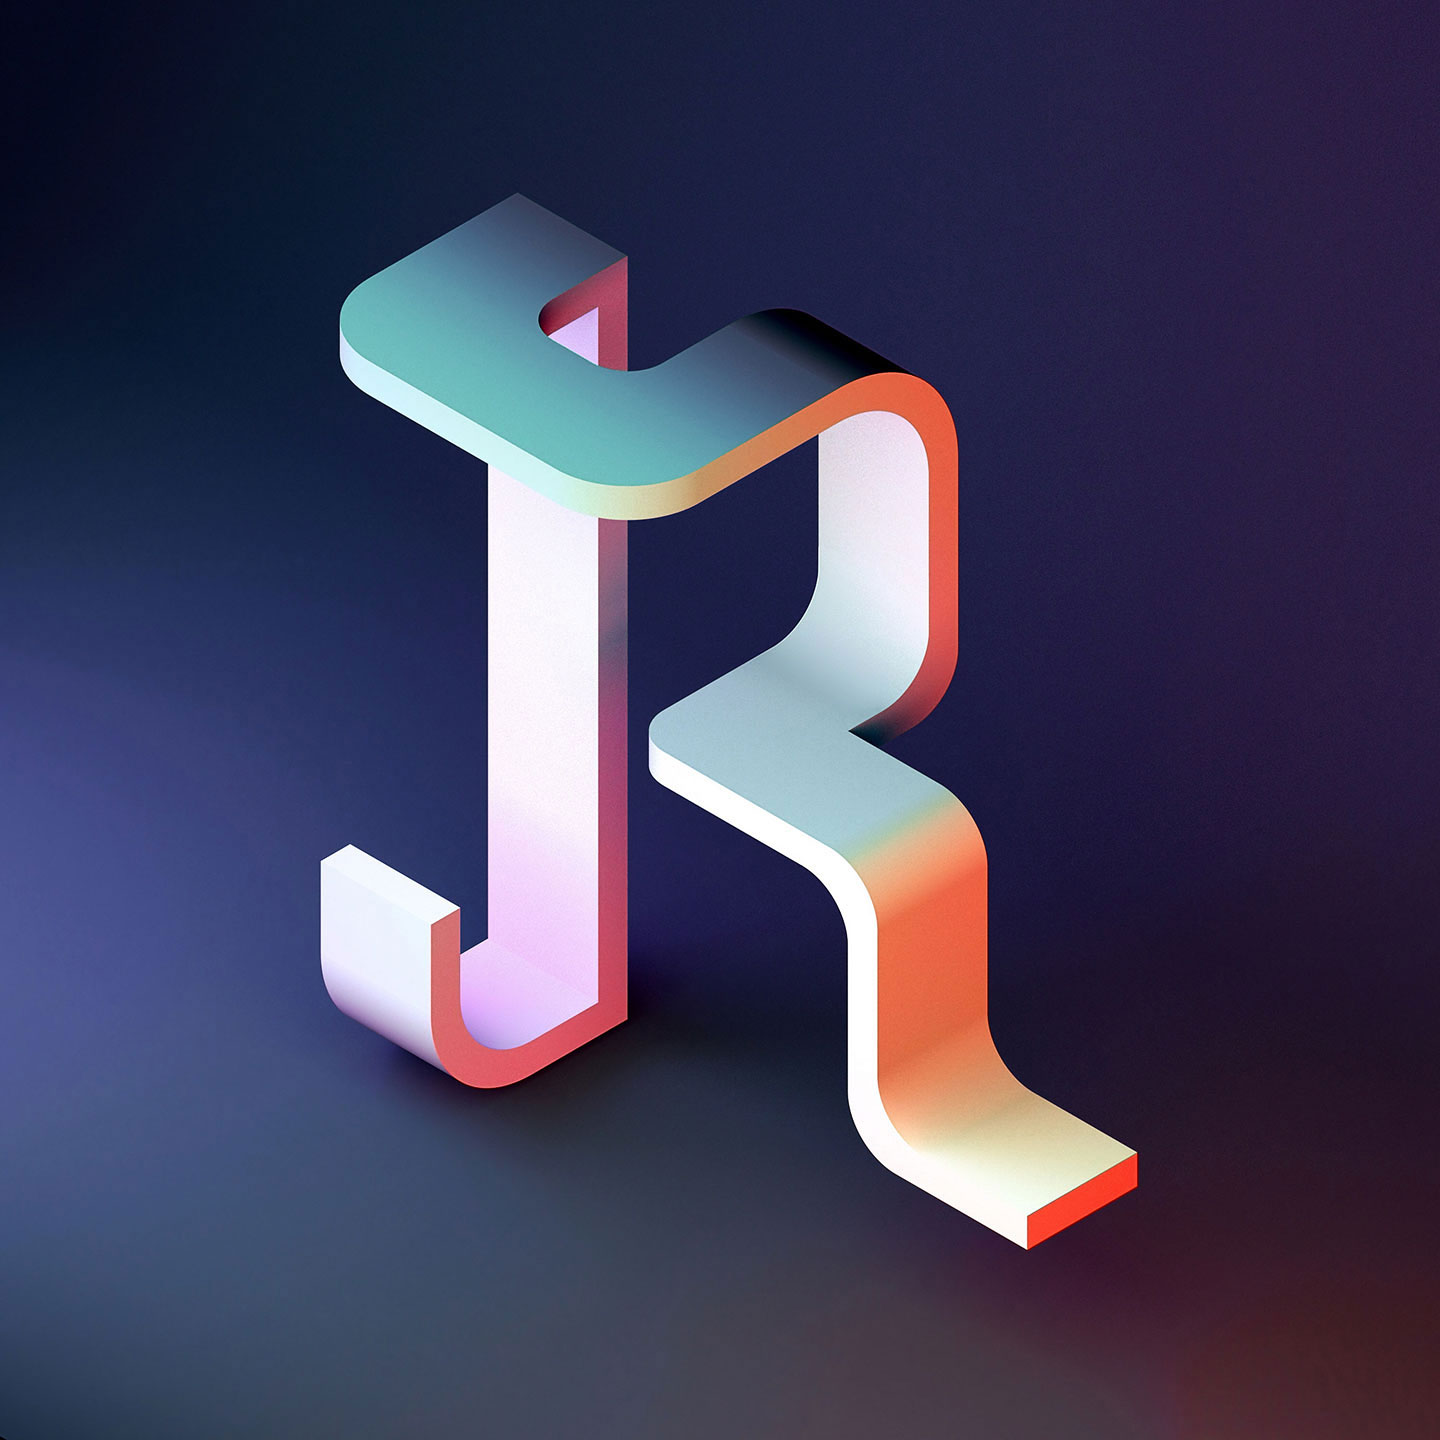 36 Days of Type 2016 - 3D typography letter R visual.